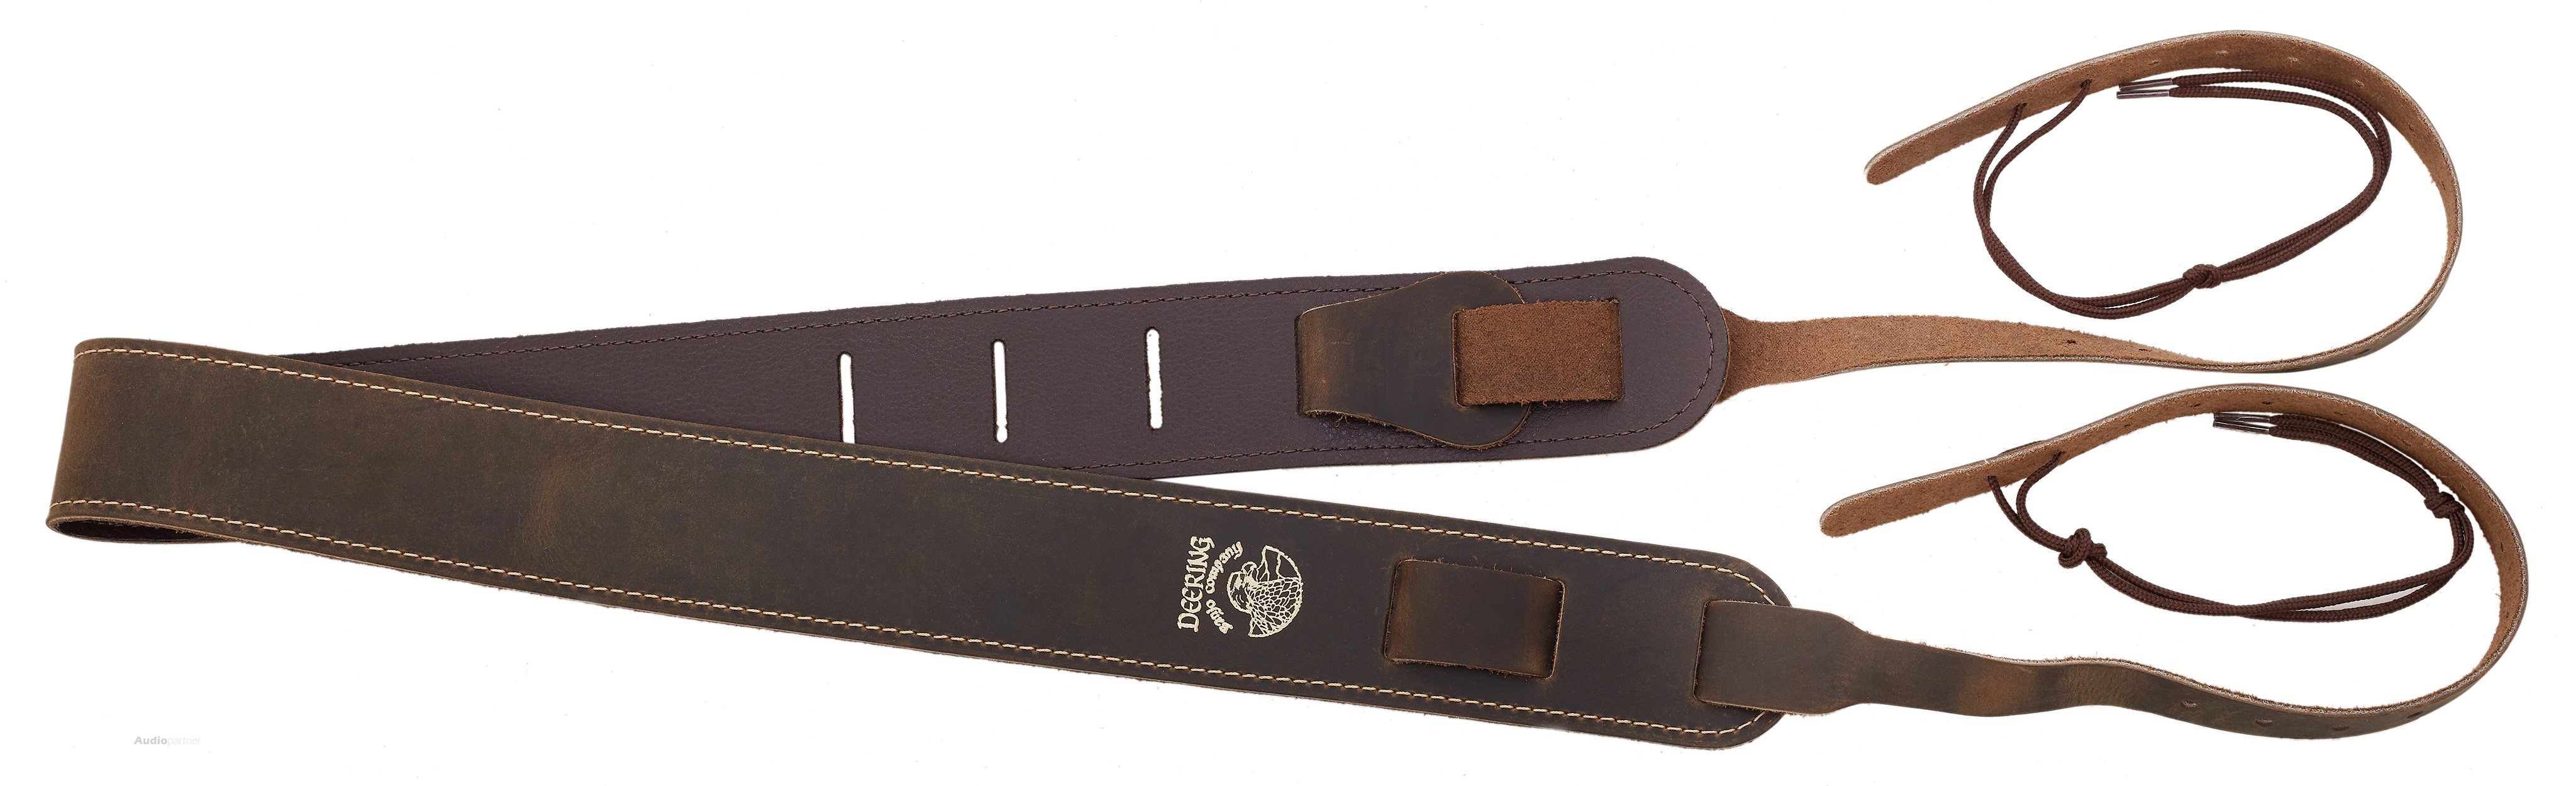 DEERING Stitched Leather Cradle Strap